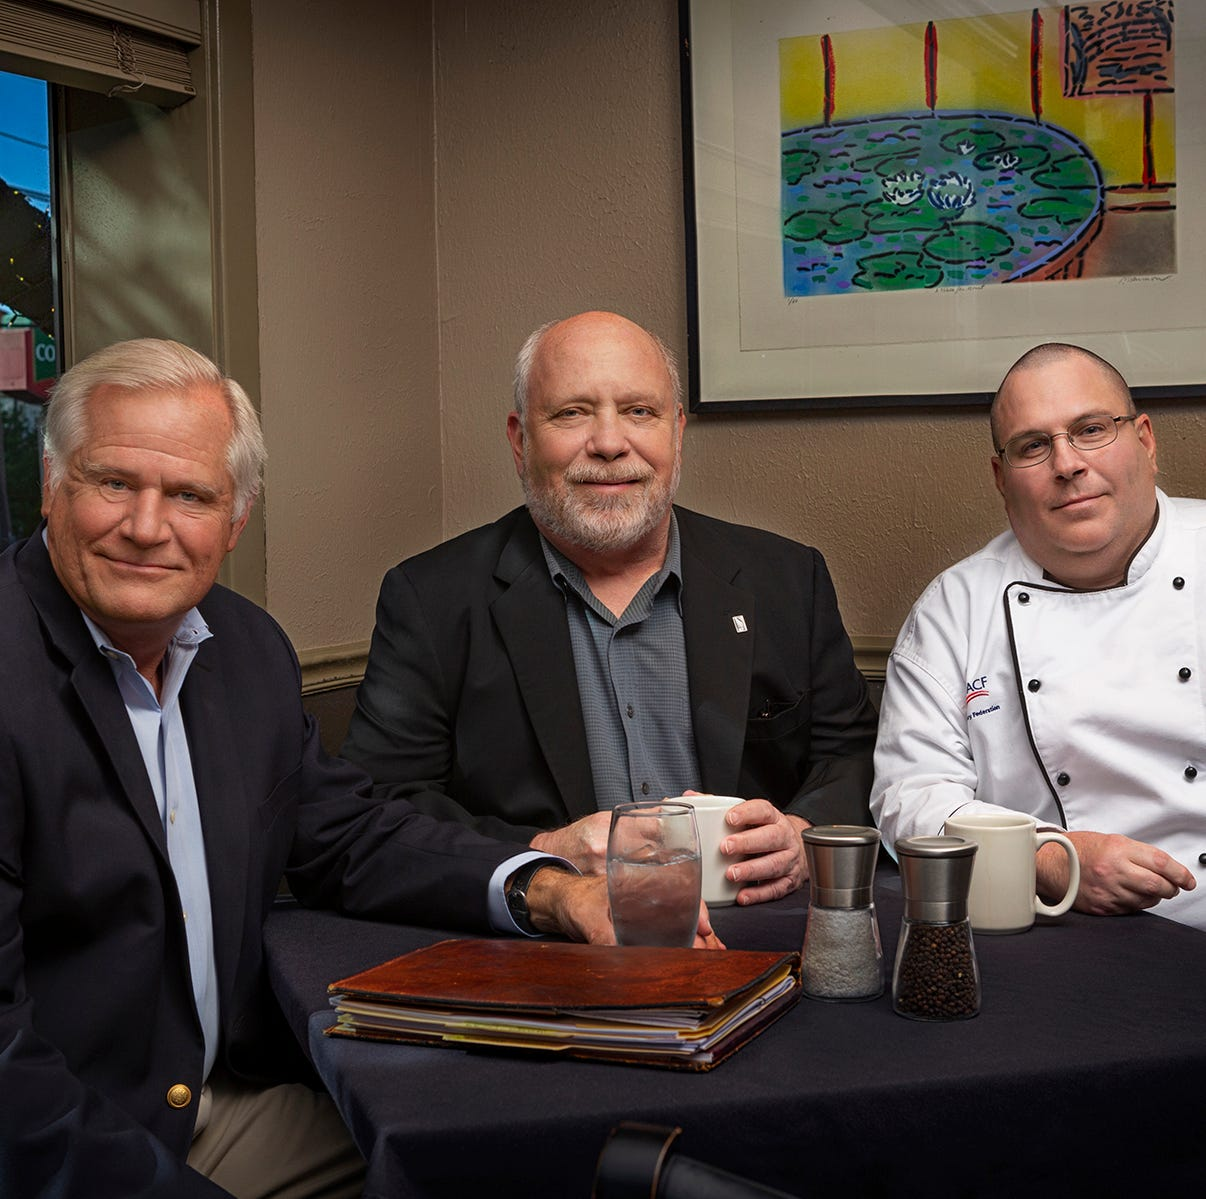 Nashville hospitality veterans form consulting group